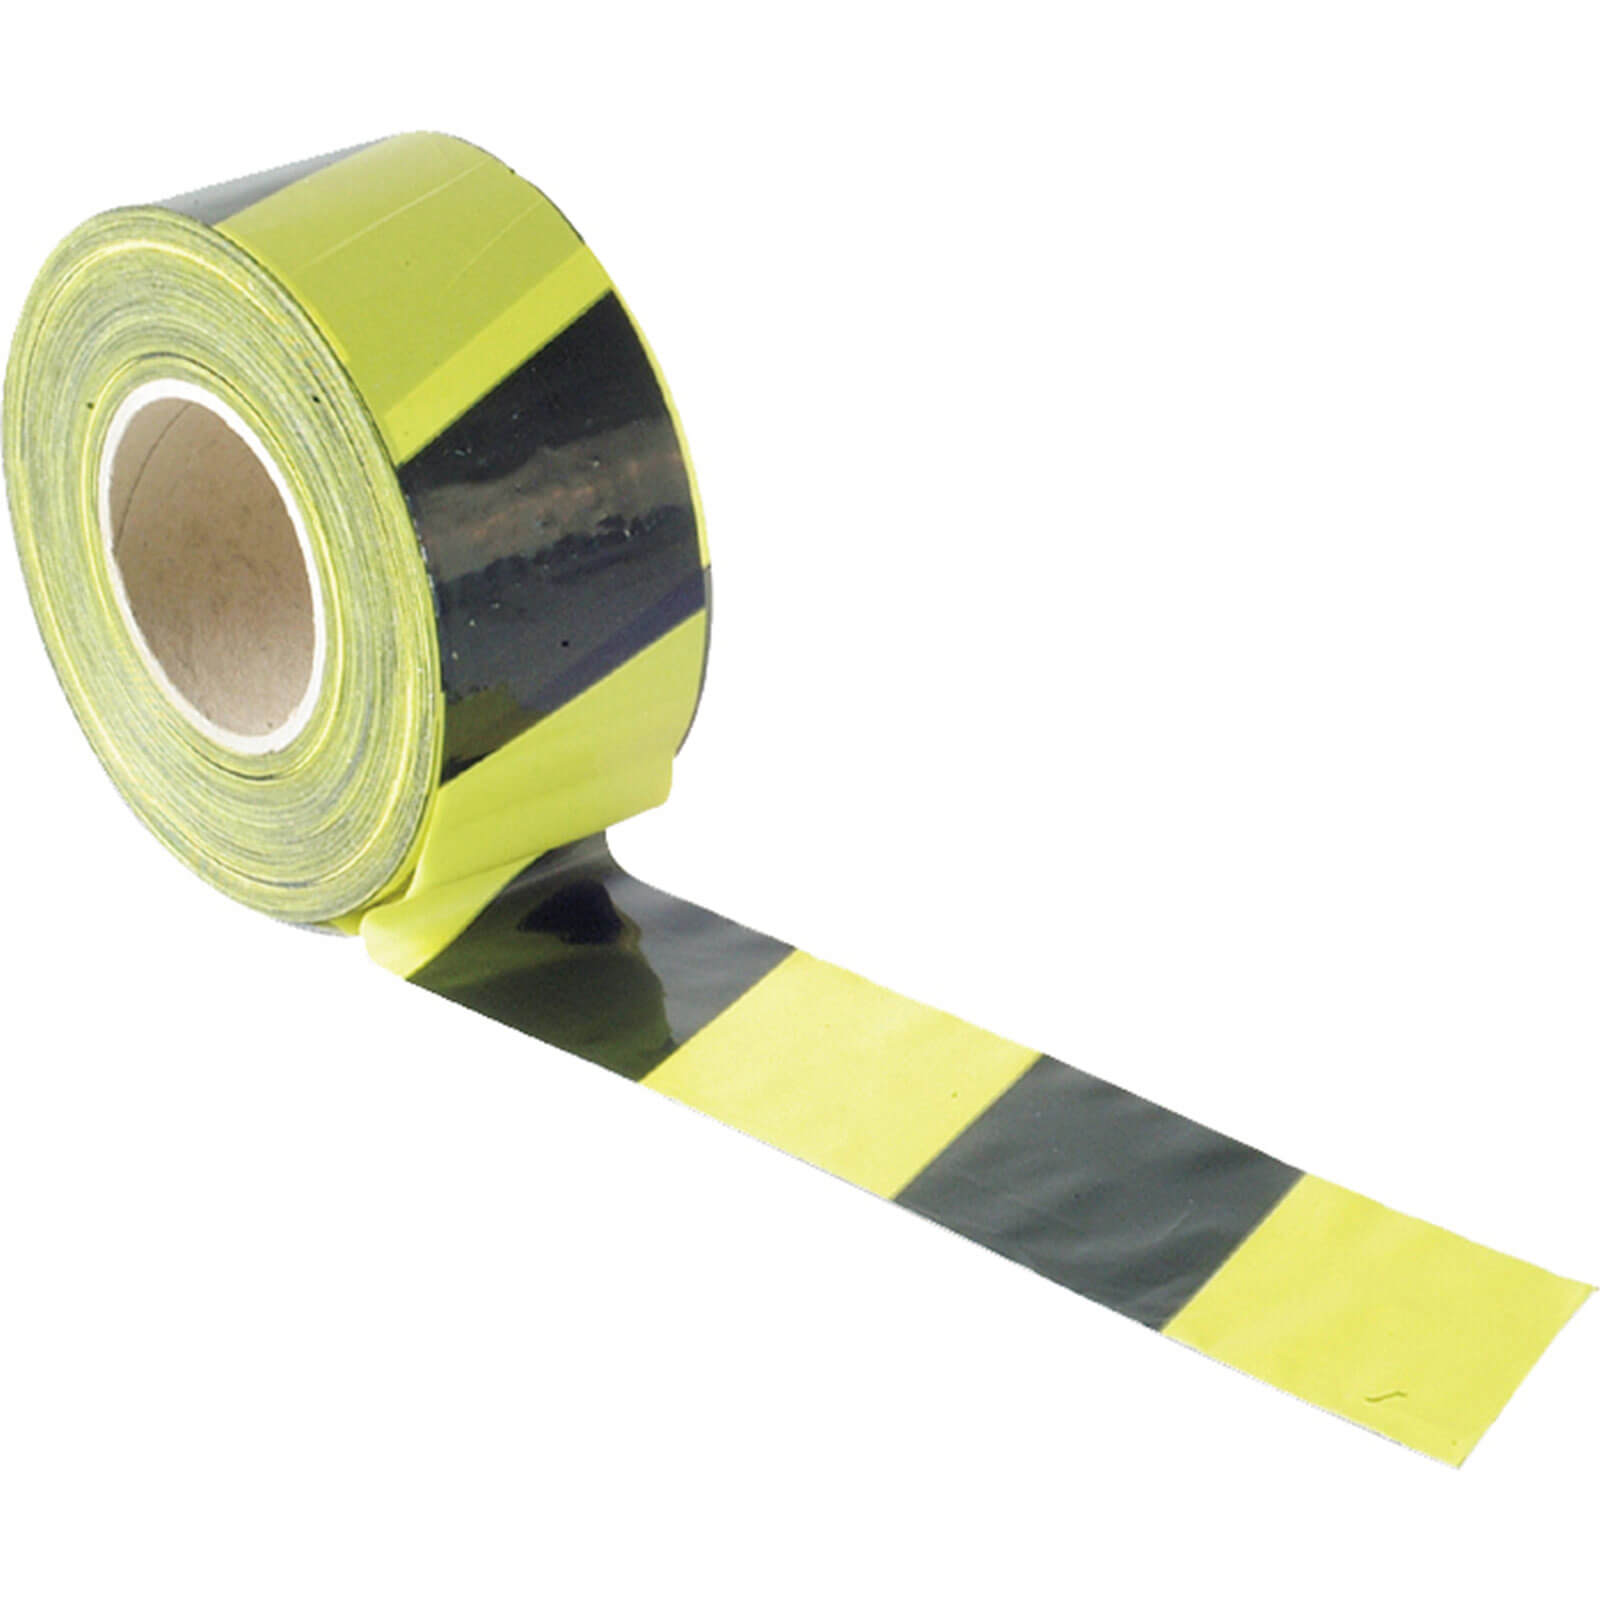 Image of Sirius Adhesive Hazard Warning Tape Black / Yellow 50mm 33m